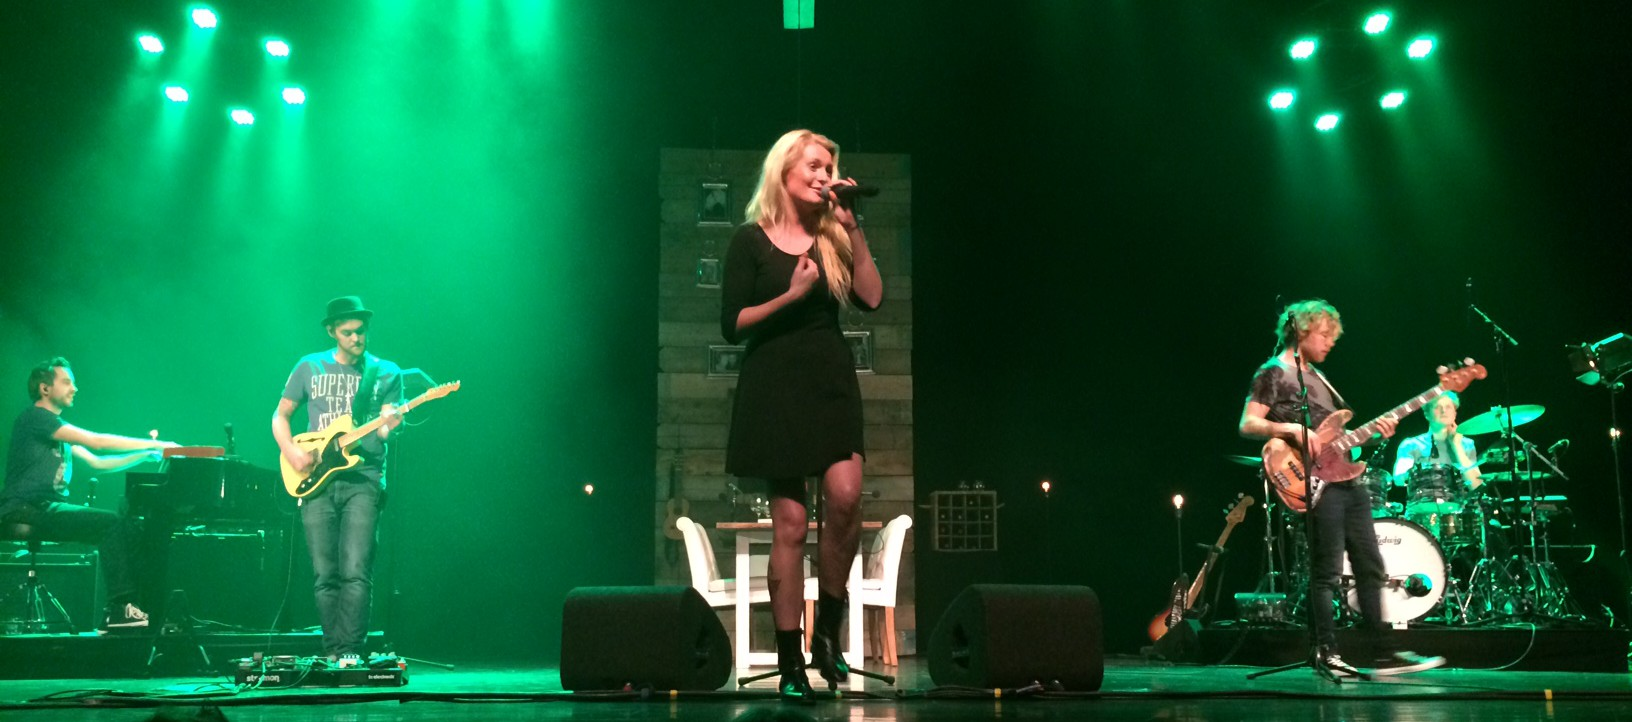 Concertreview: Onmeunig Sanne